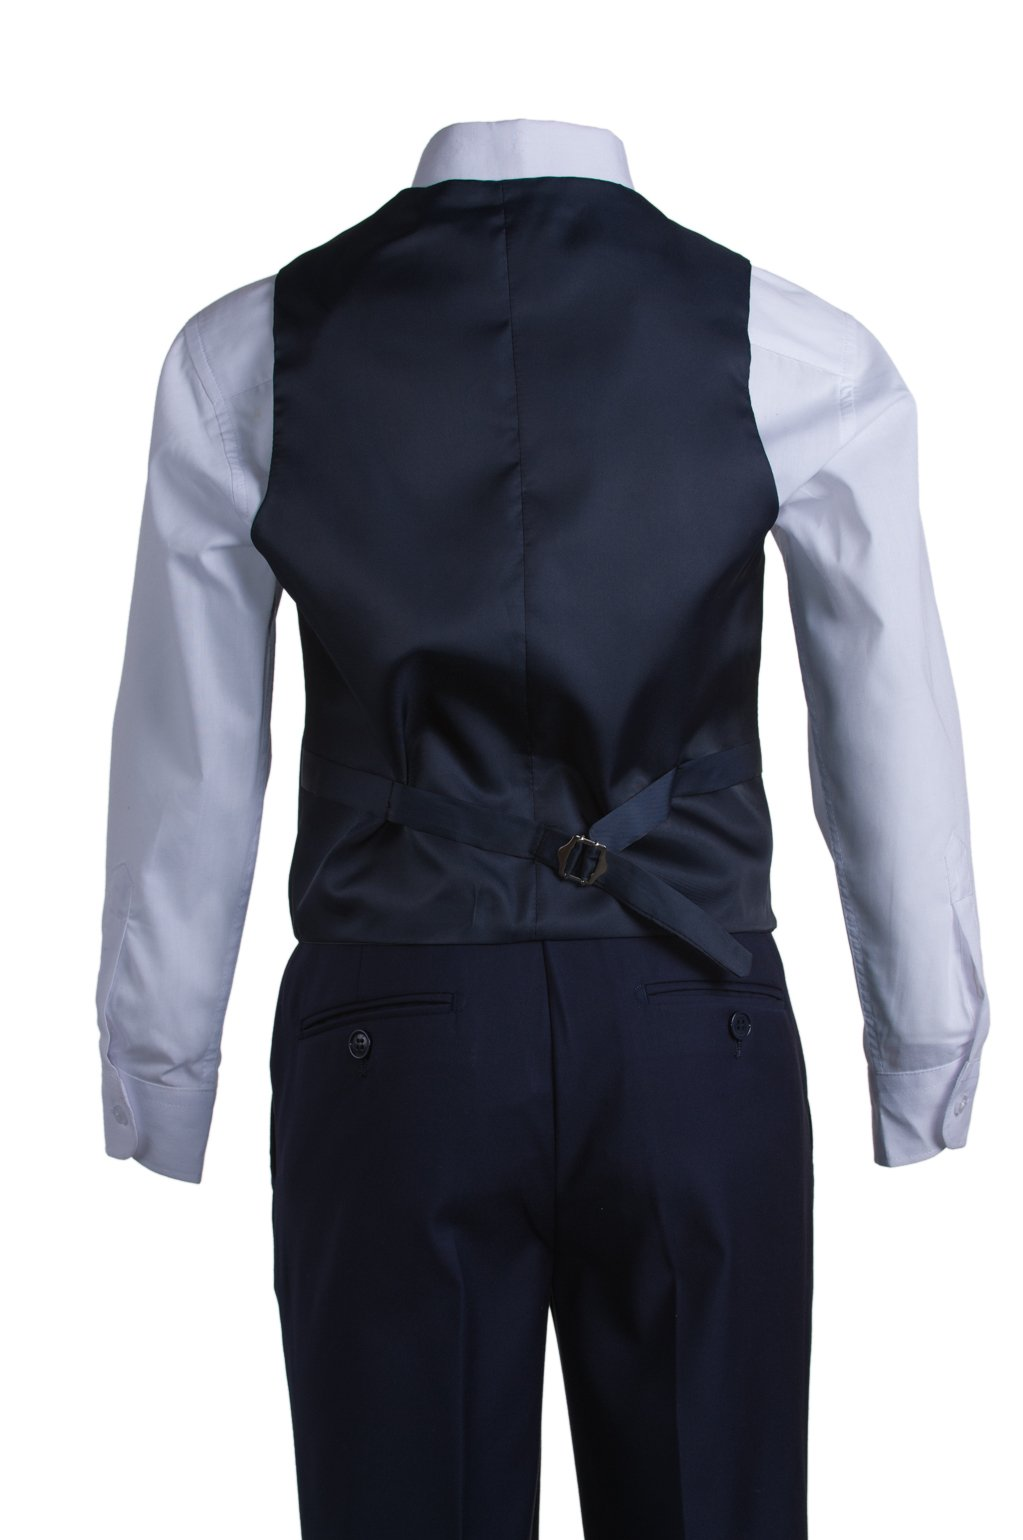 Boys Navy Blue Slim Fit Communion Suit with Vest & White Clergy Tie (10 Boys) by Tuxgear (Image #6)